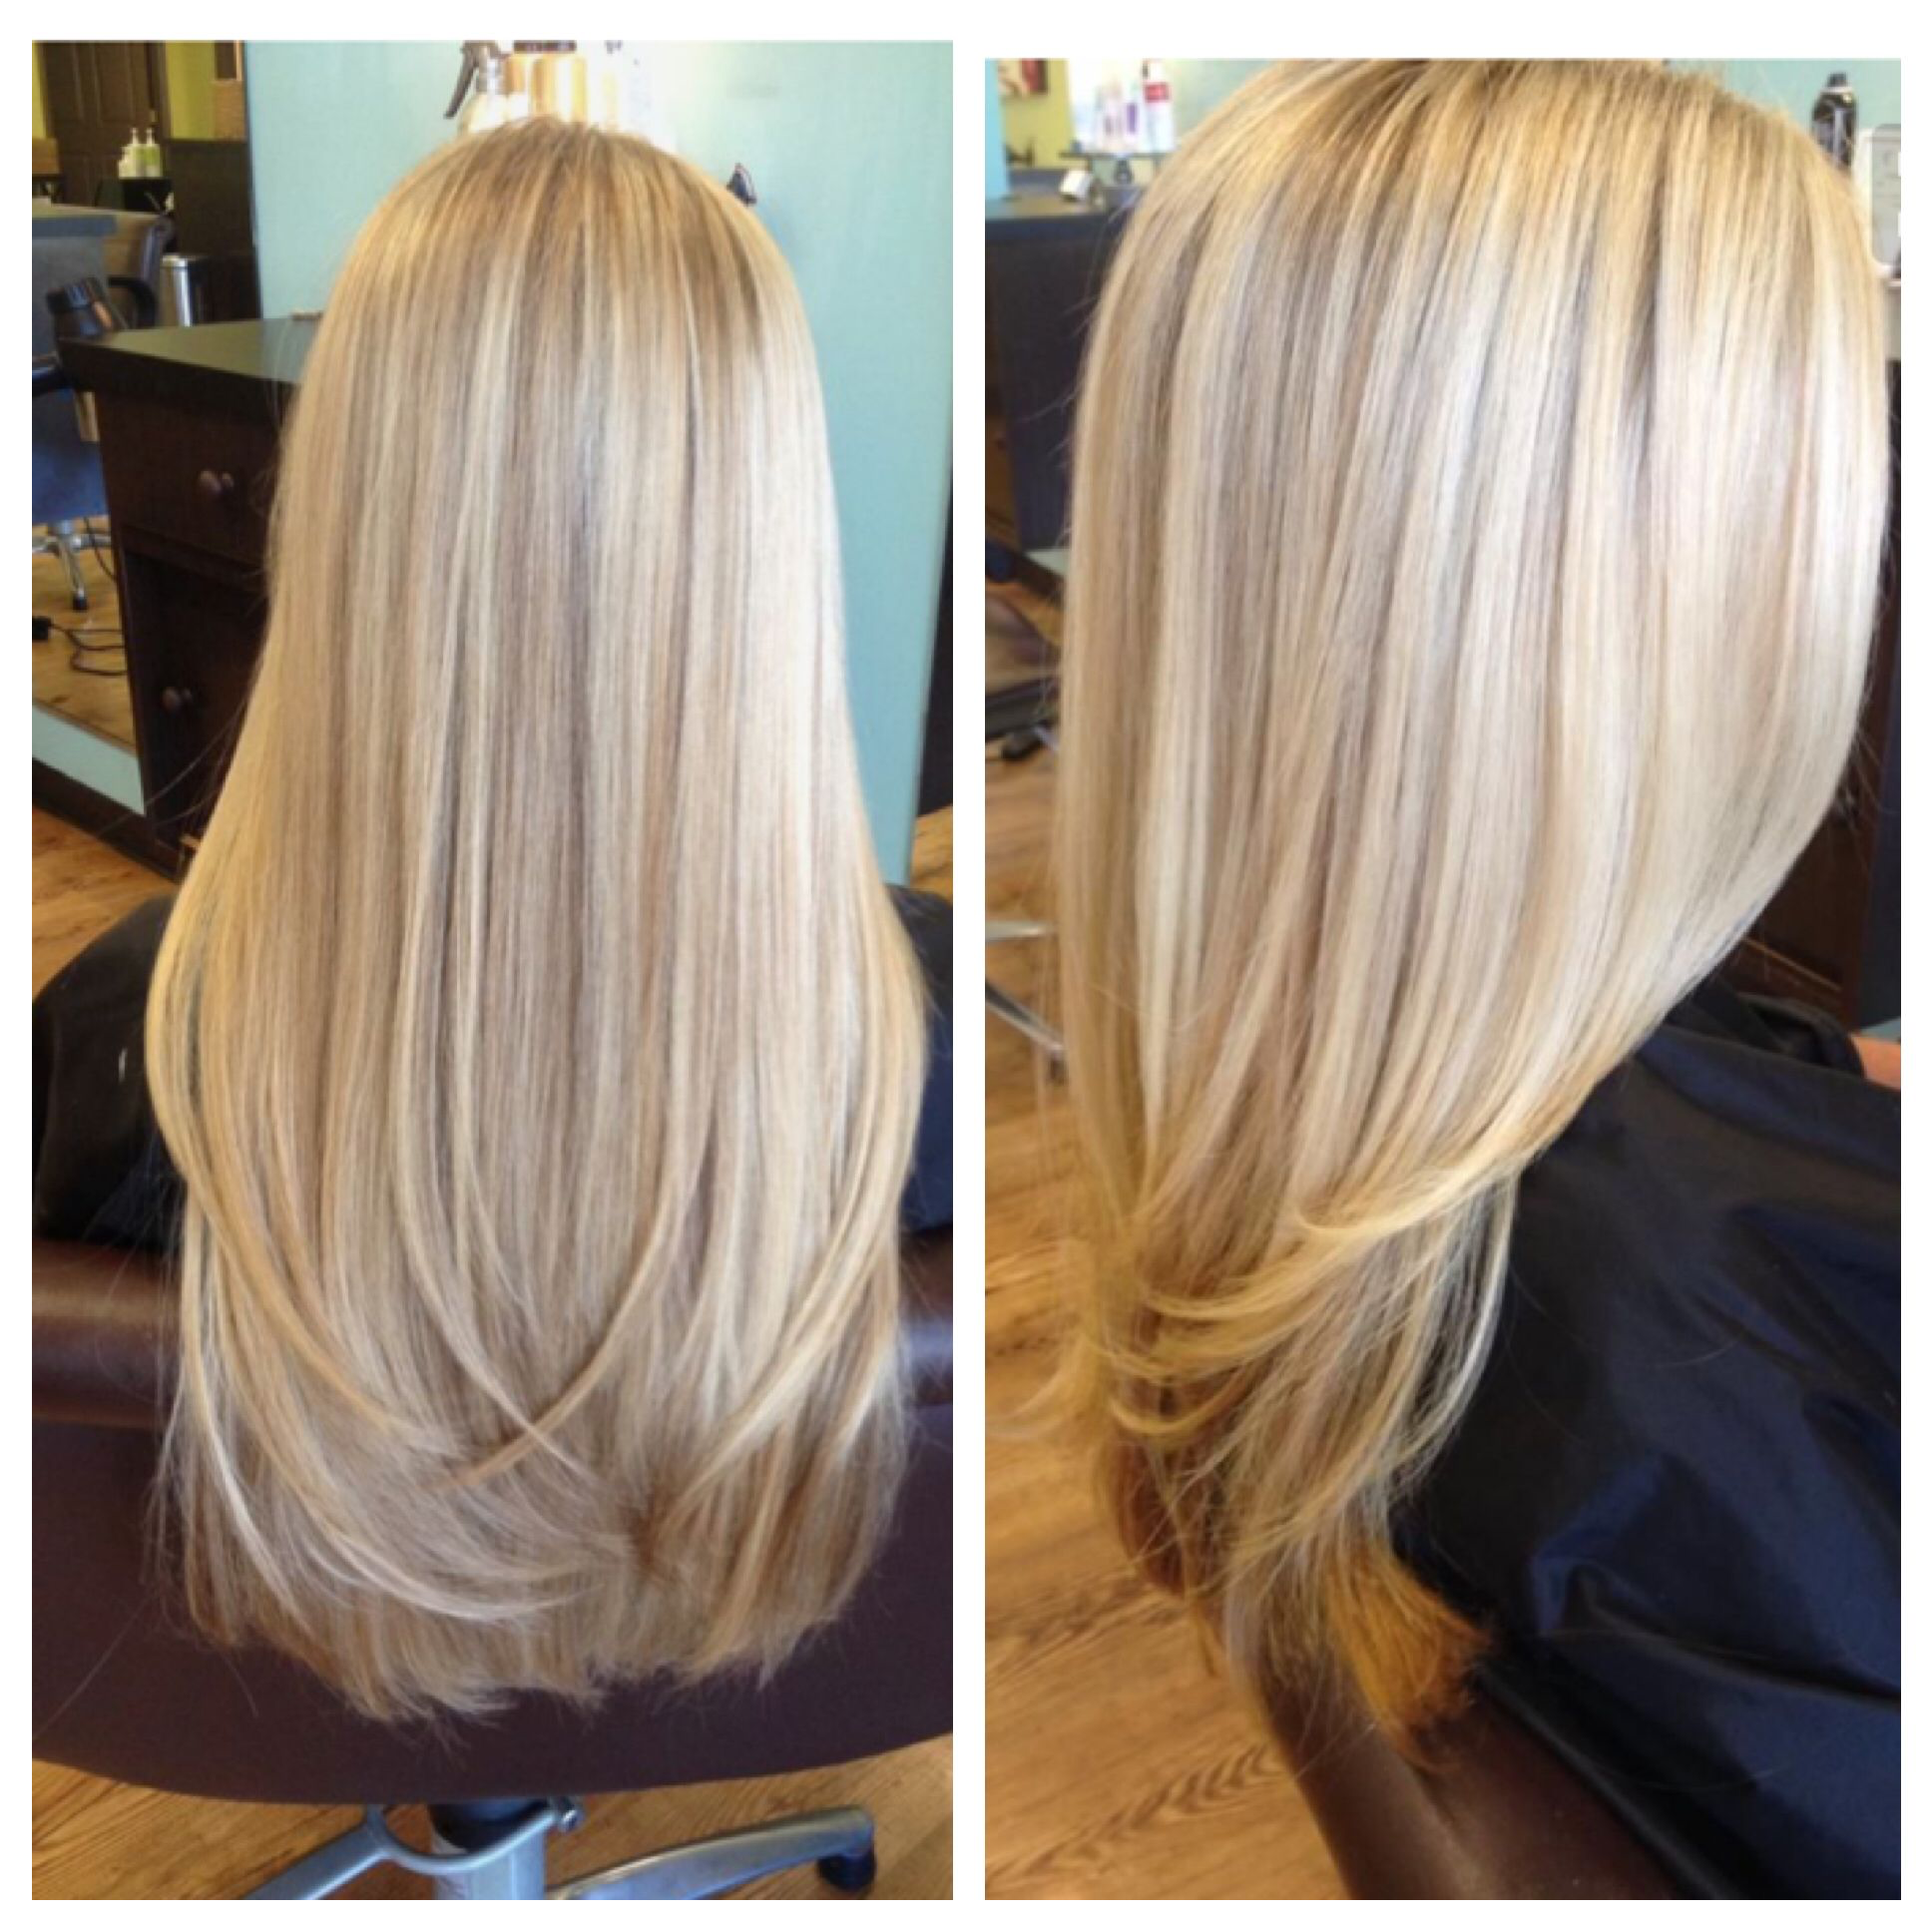 Help? What color blonde would you call this?